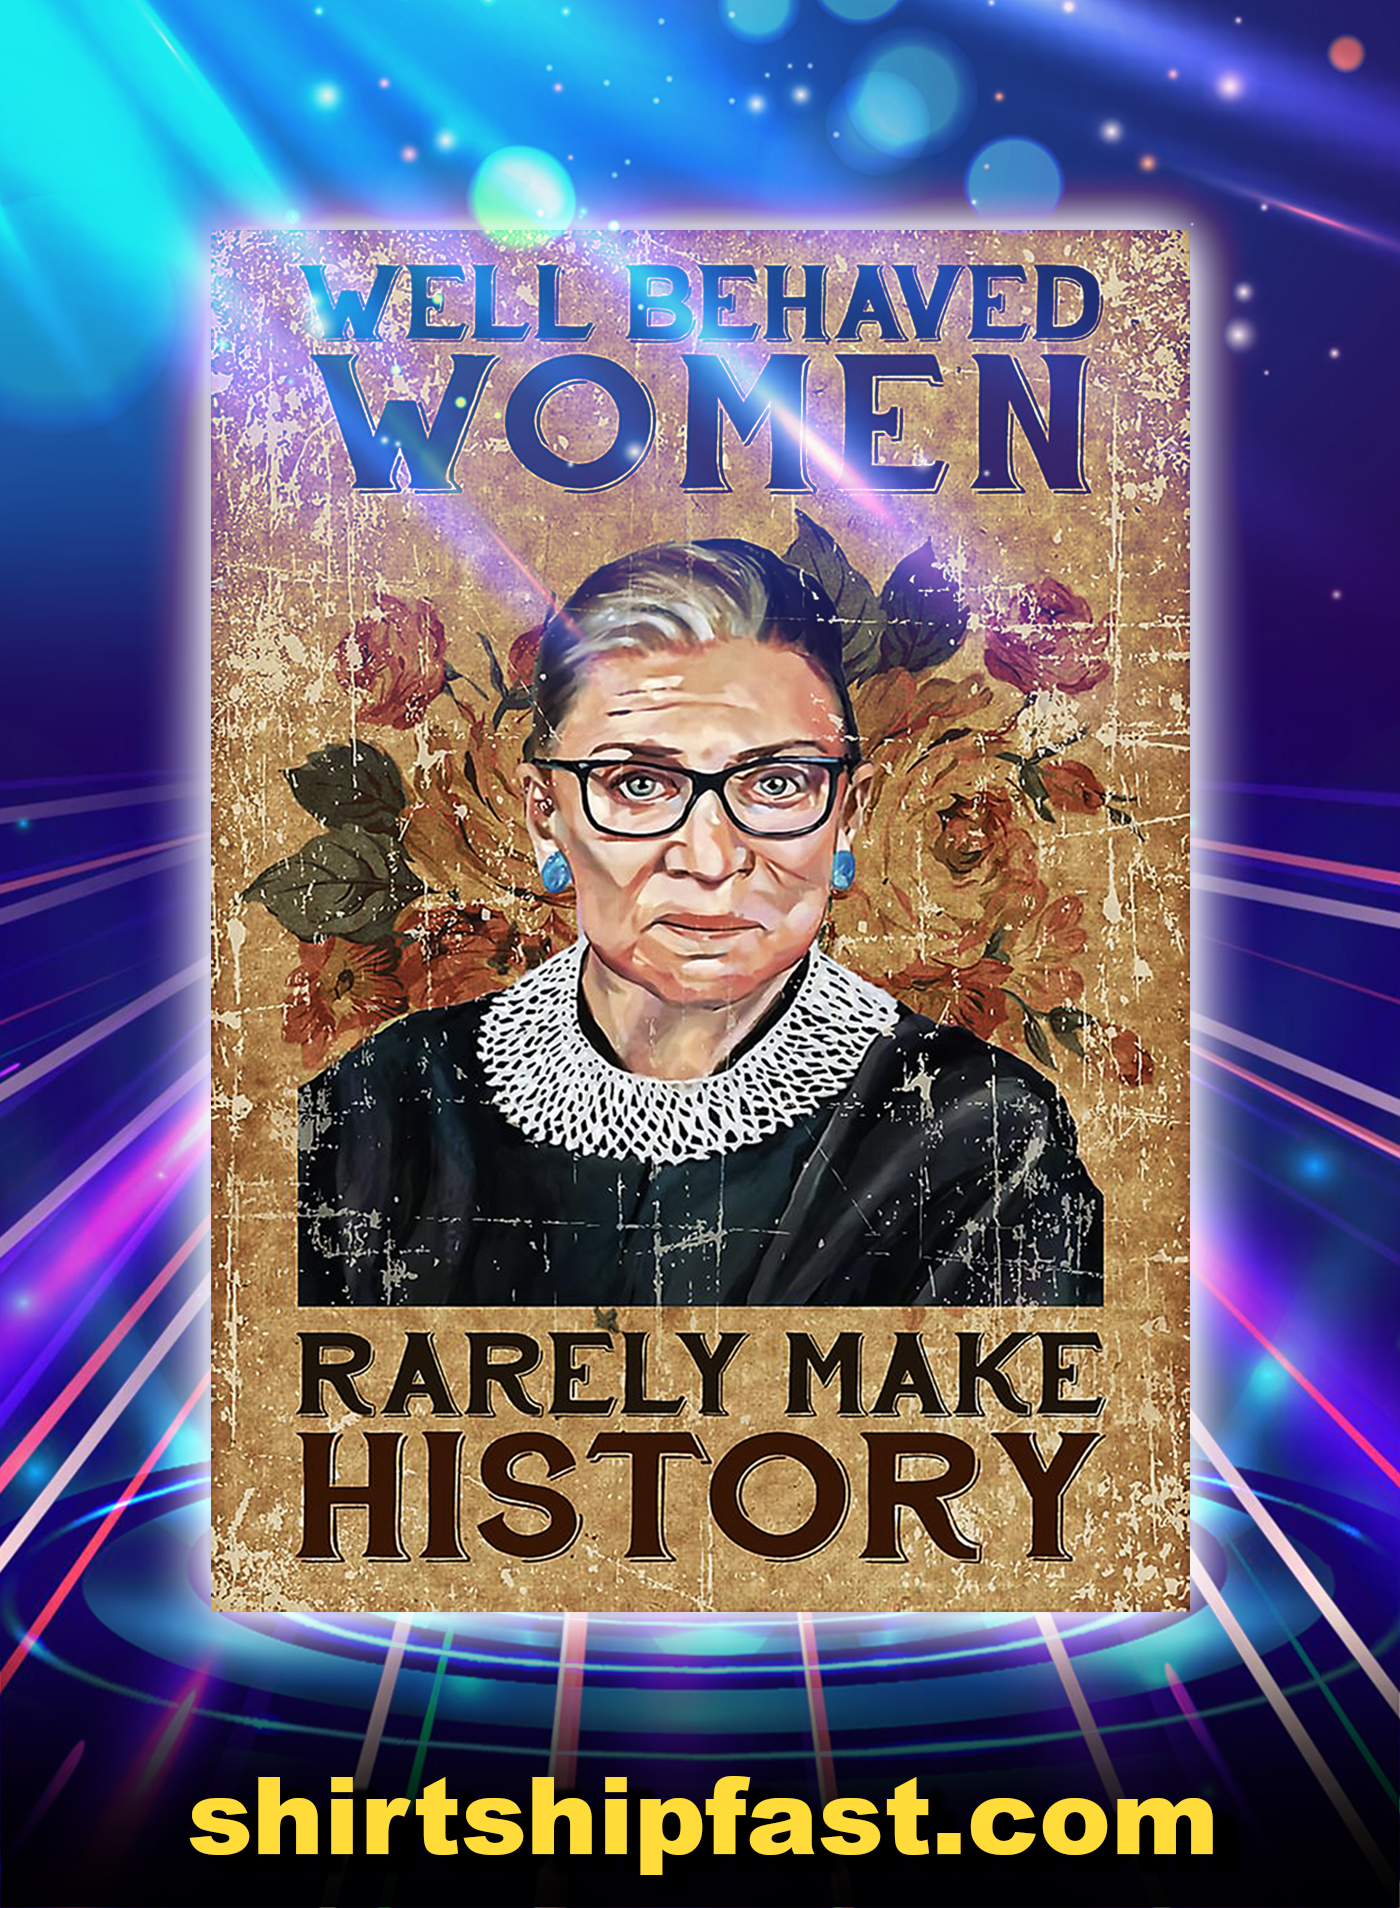 Rbg well behaved woman rearely make history poster - A1